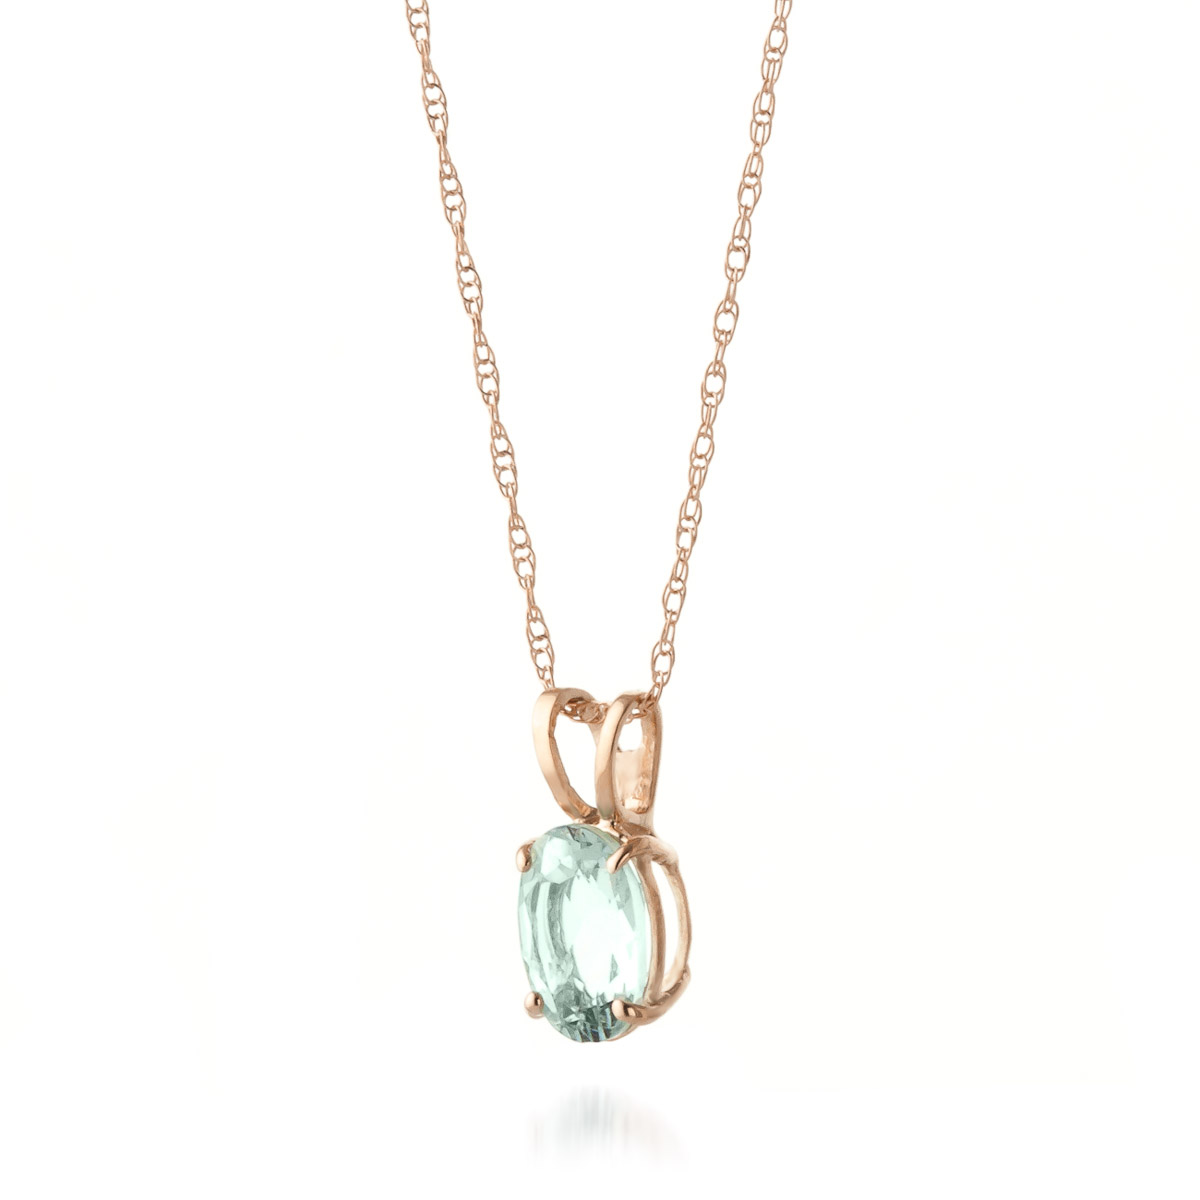 Oval Cut Aquamarine Pendant Necklace 0.75ct in 9ct Rose Gold